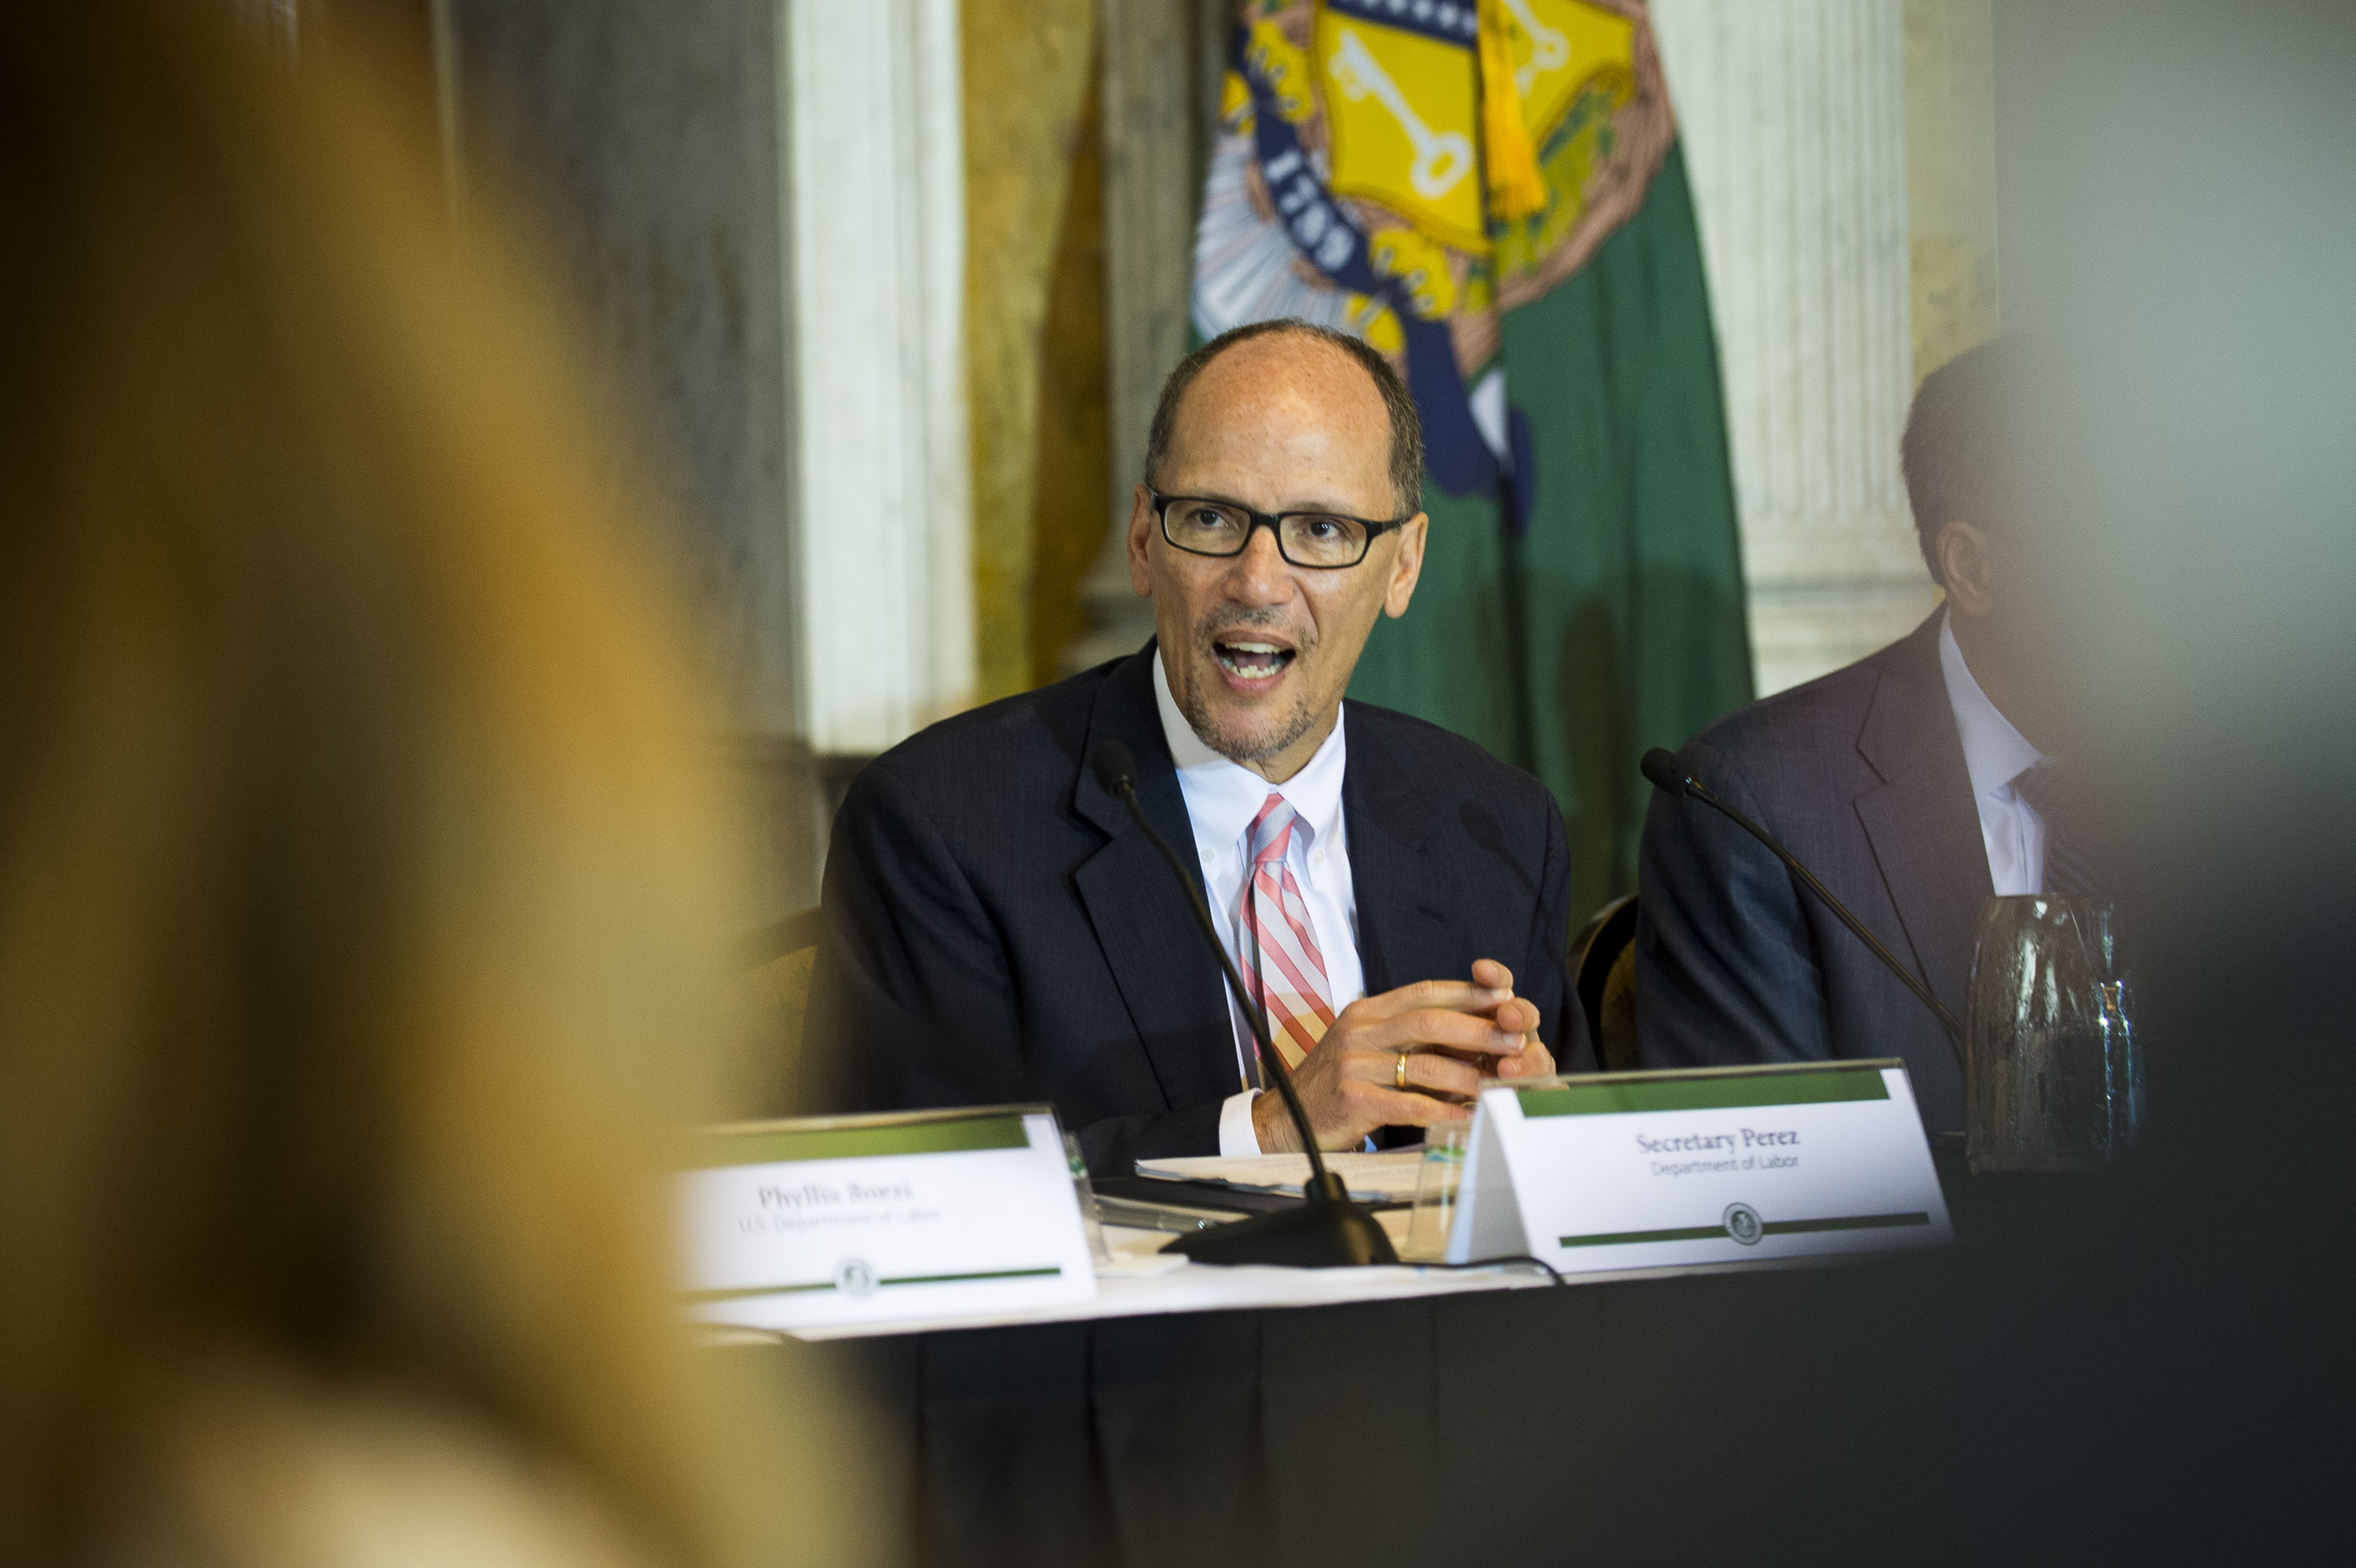 VDP Welcomes Secretary Tom Perez as New DNC Chair